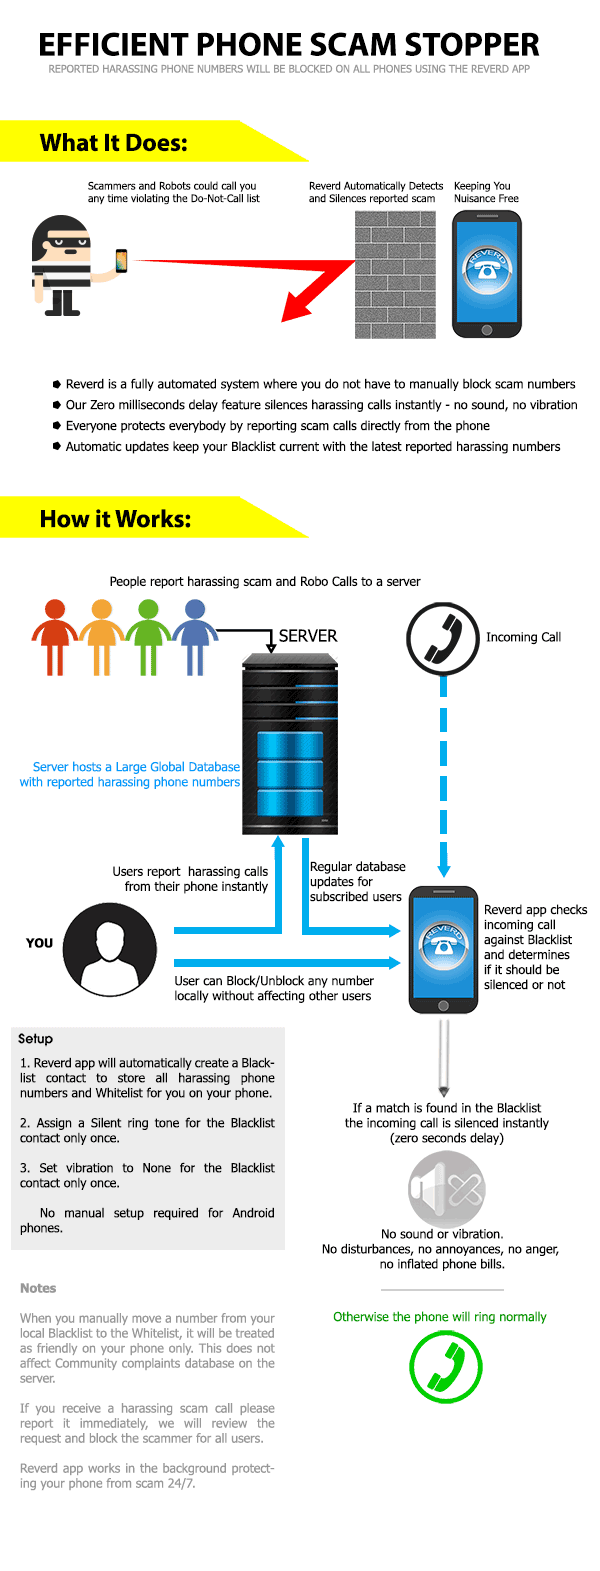 Reverd - How it works infographic